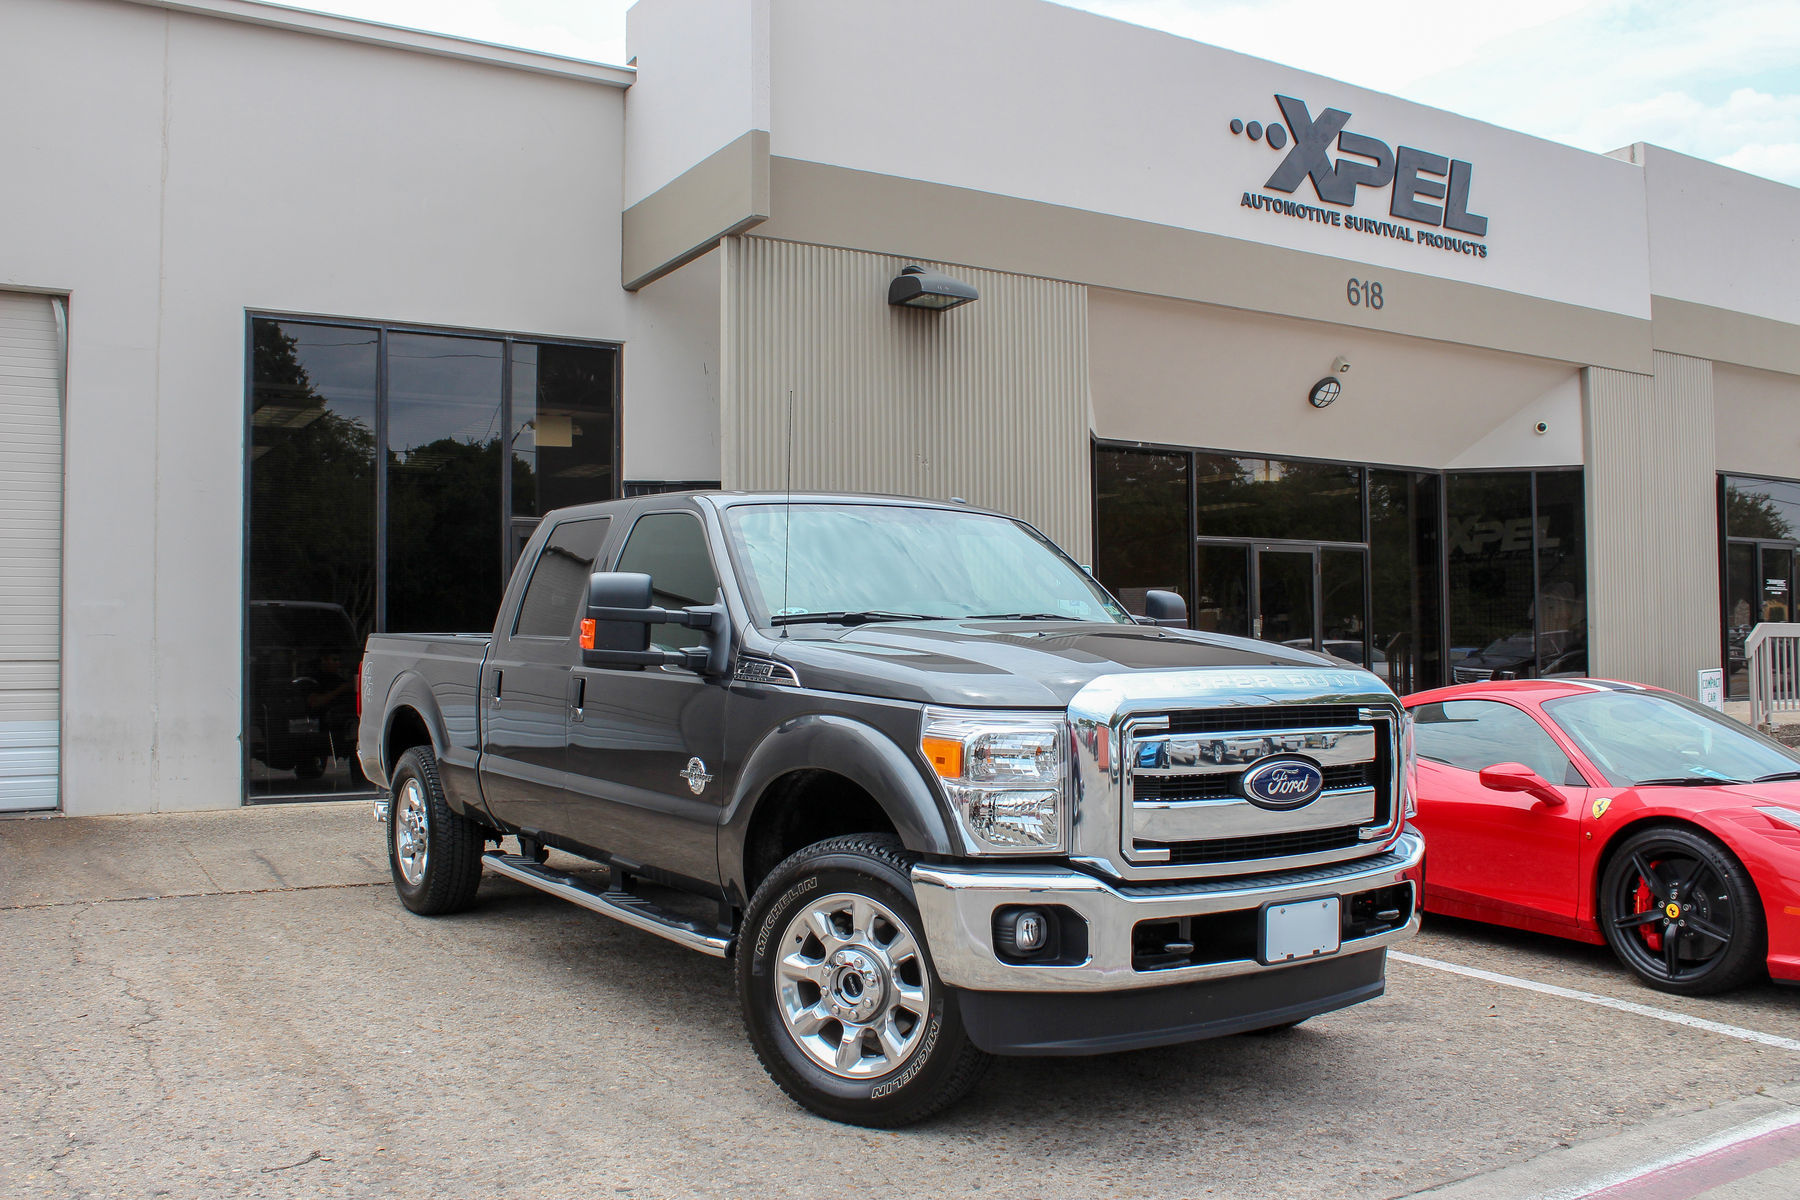 Ford F-350 Super Duty | Ford with XPEL ULTIMATE self-healing clear bra